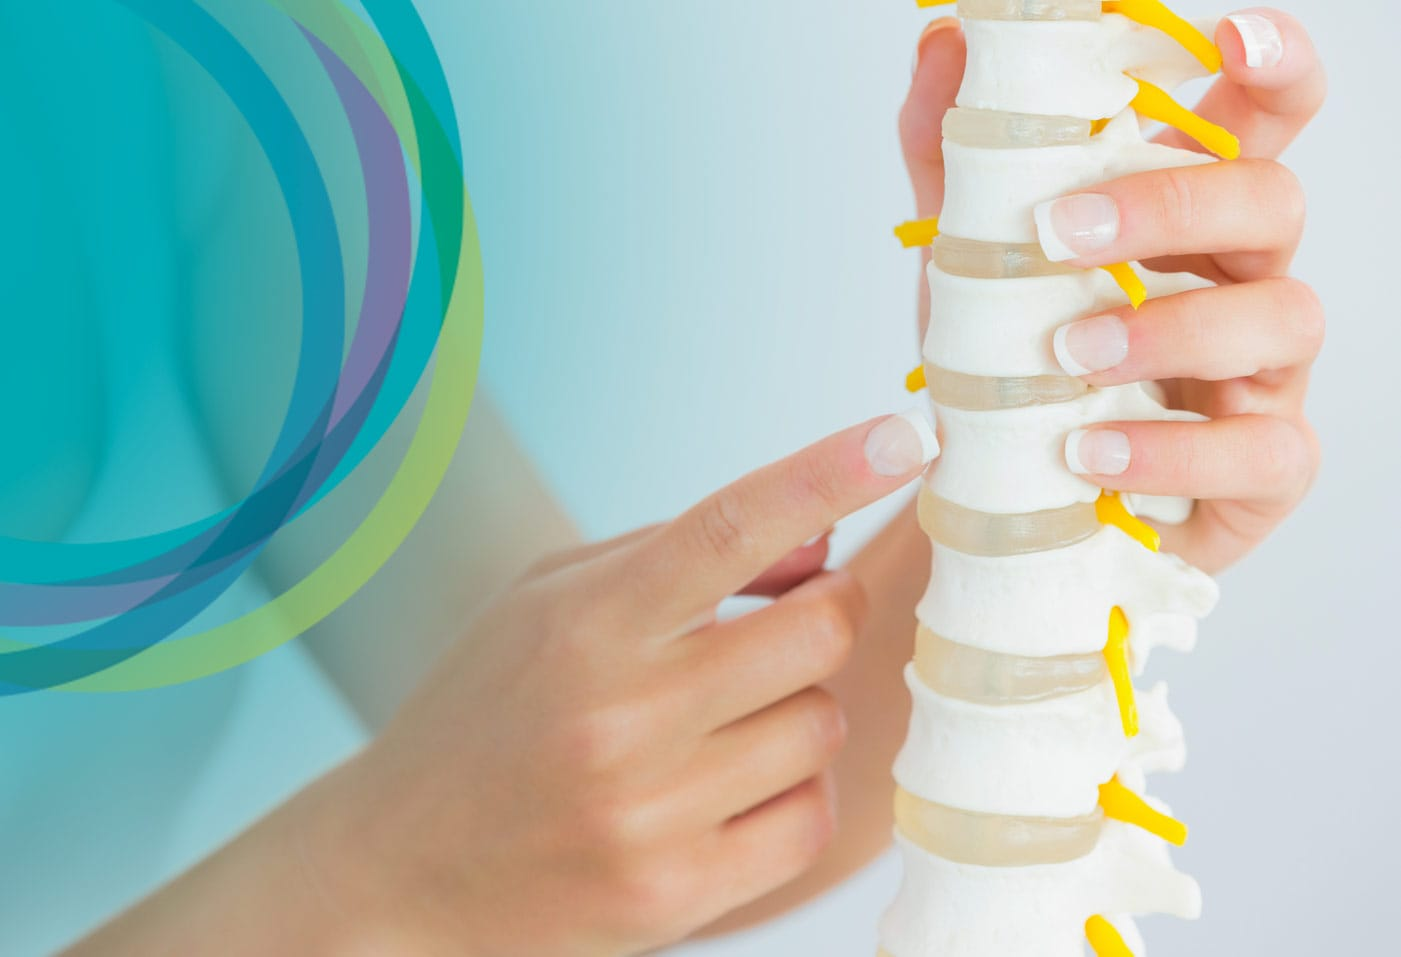 Chiropractor in Melbourne Questions and Answers